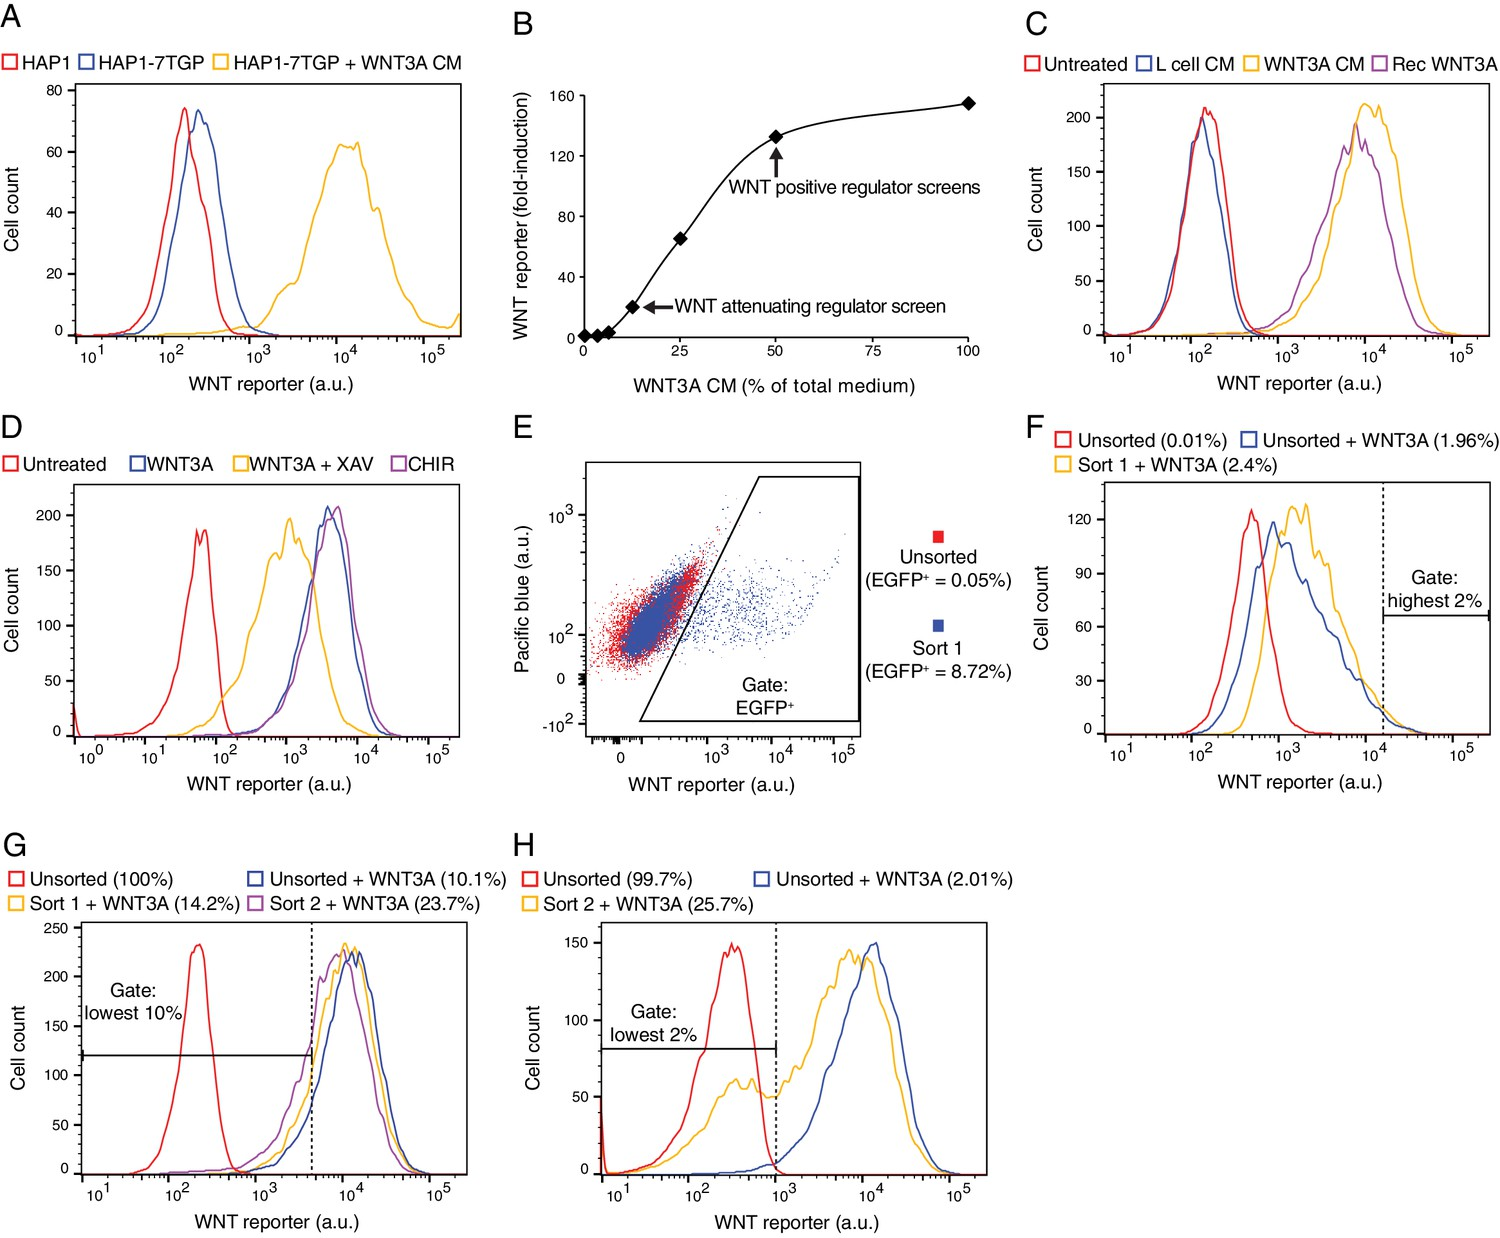 Figures And Data In Comparative Genetic Screens Human Cells This Diagram Is To Be Used Conjunction With The Spreadsheet Characterization Of Hap1 7tgp A Haploid Cell Line Harboring Wnt Responsive Fluorescent Reporter Ad Depiction Facs Gates Phenotypic